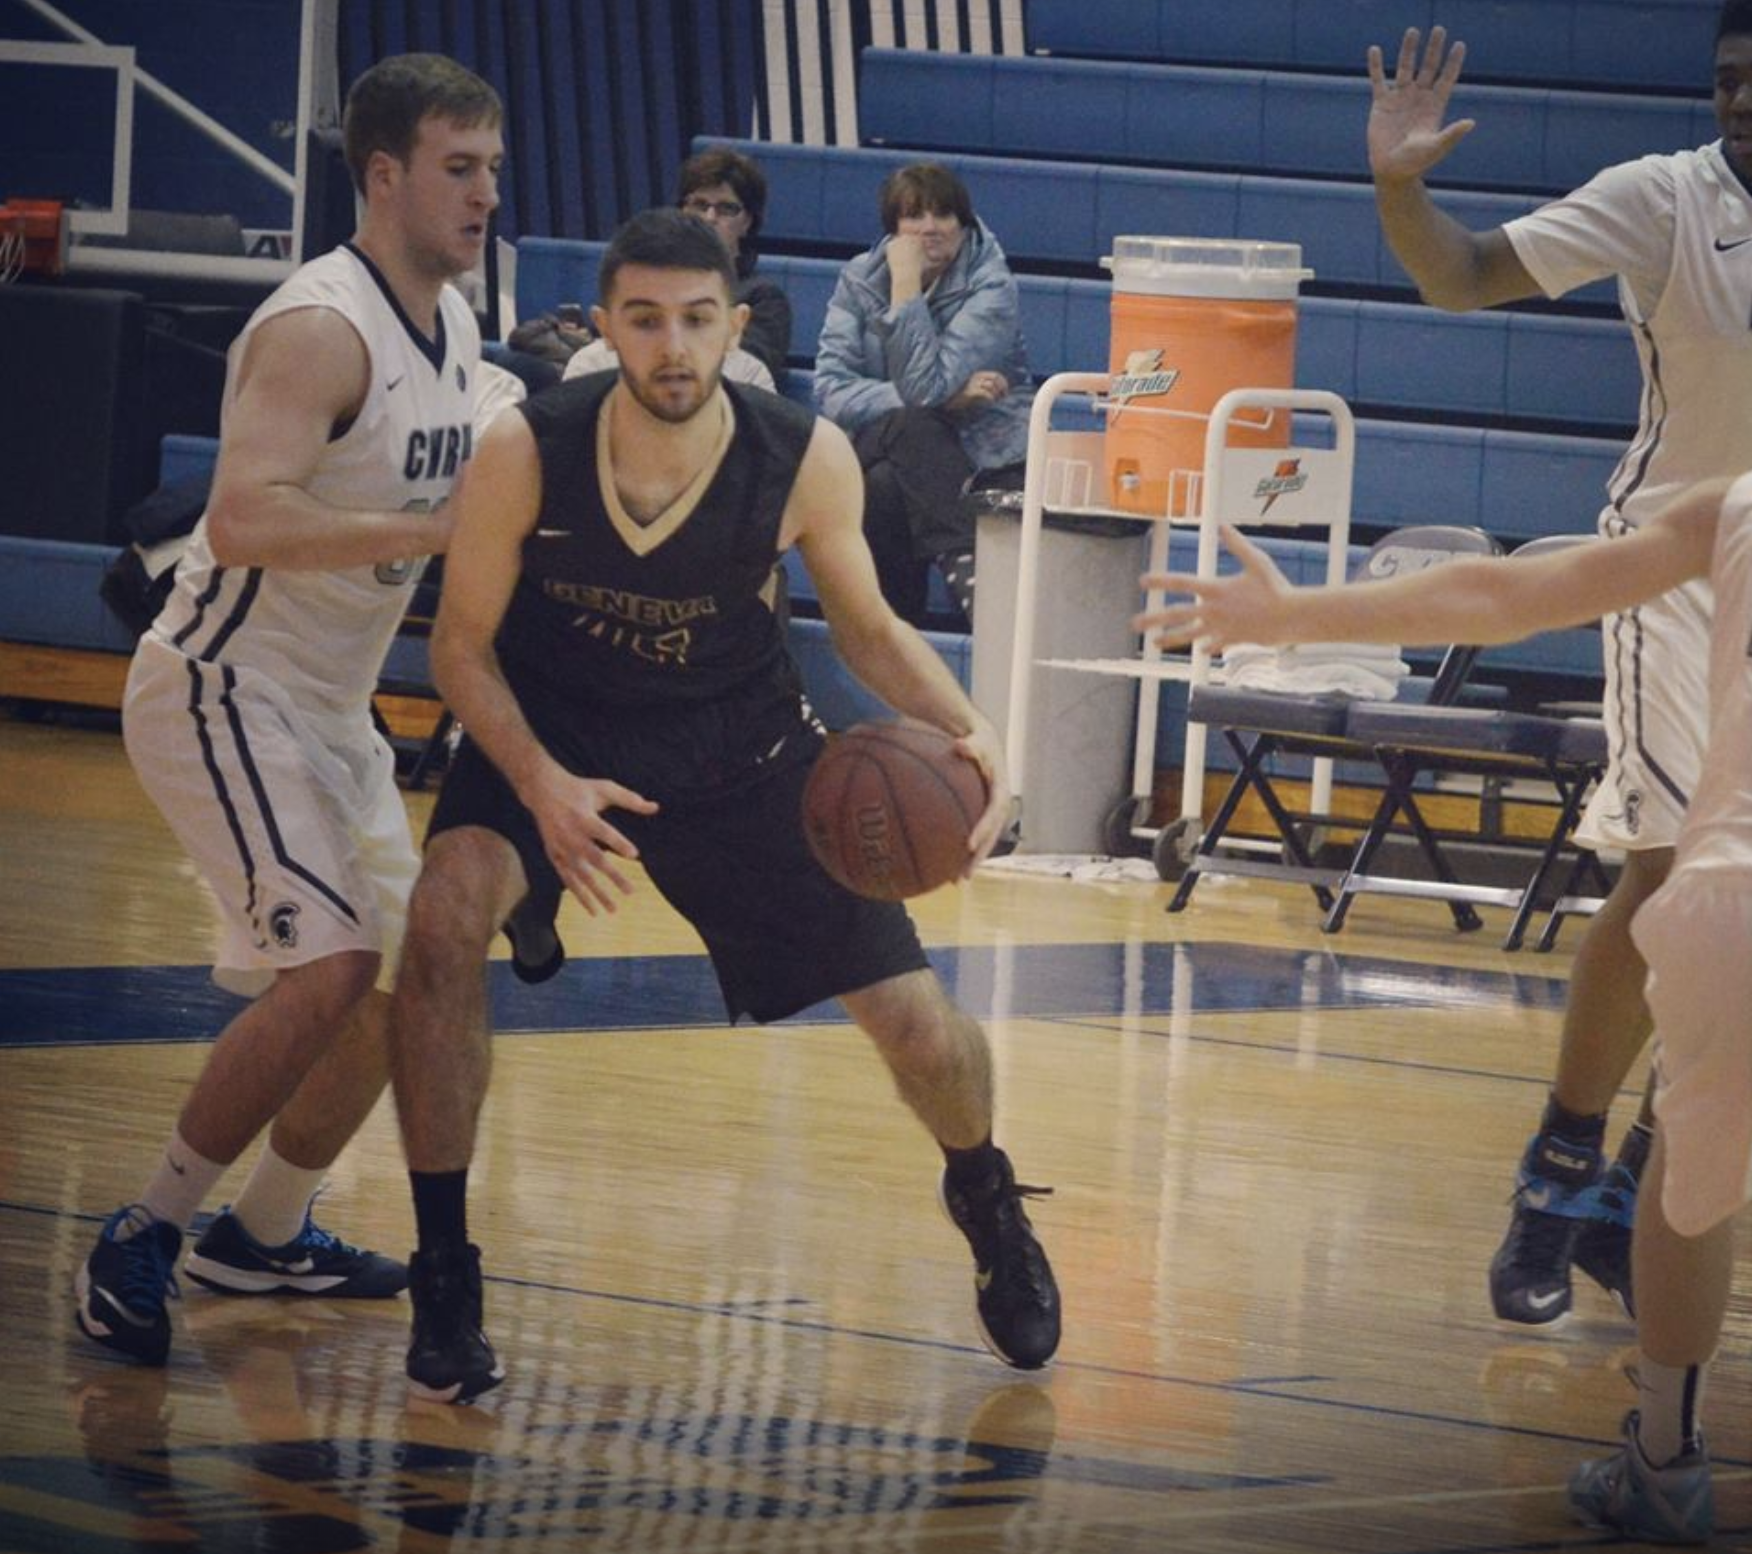 Rock On: A 6-foot-5 forward and center, Rocky Higgins left his mark on the court at Geneva College, where he earned letters during both 2015 and 2016 seasons and emerged as a team leader before shifting his focus to coaching youth basketball.